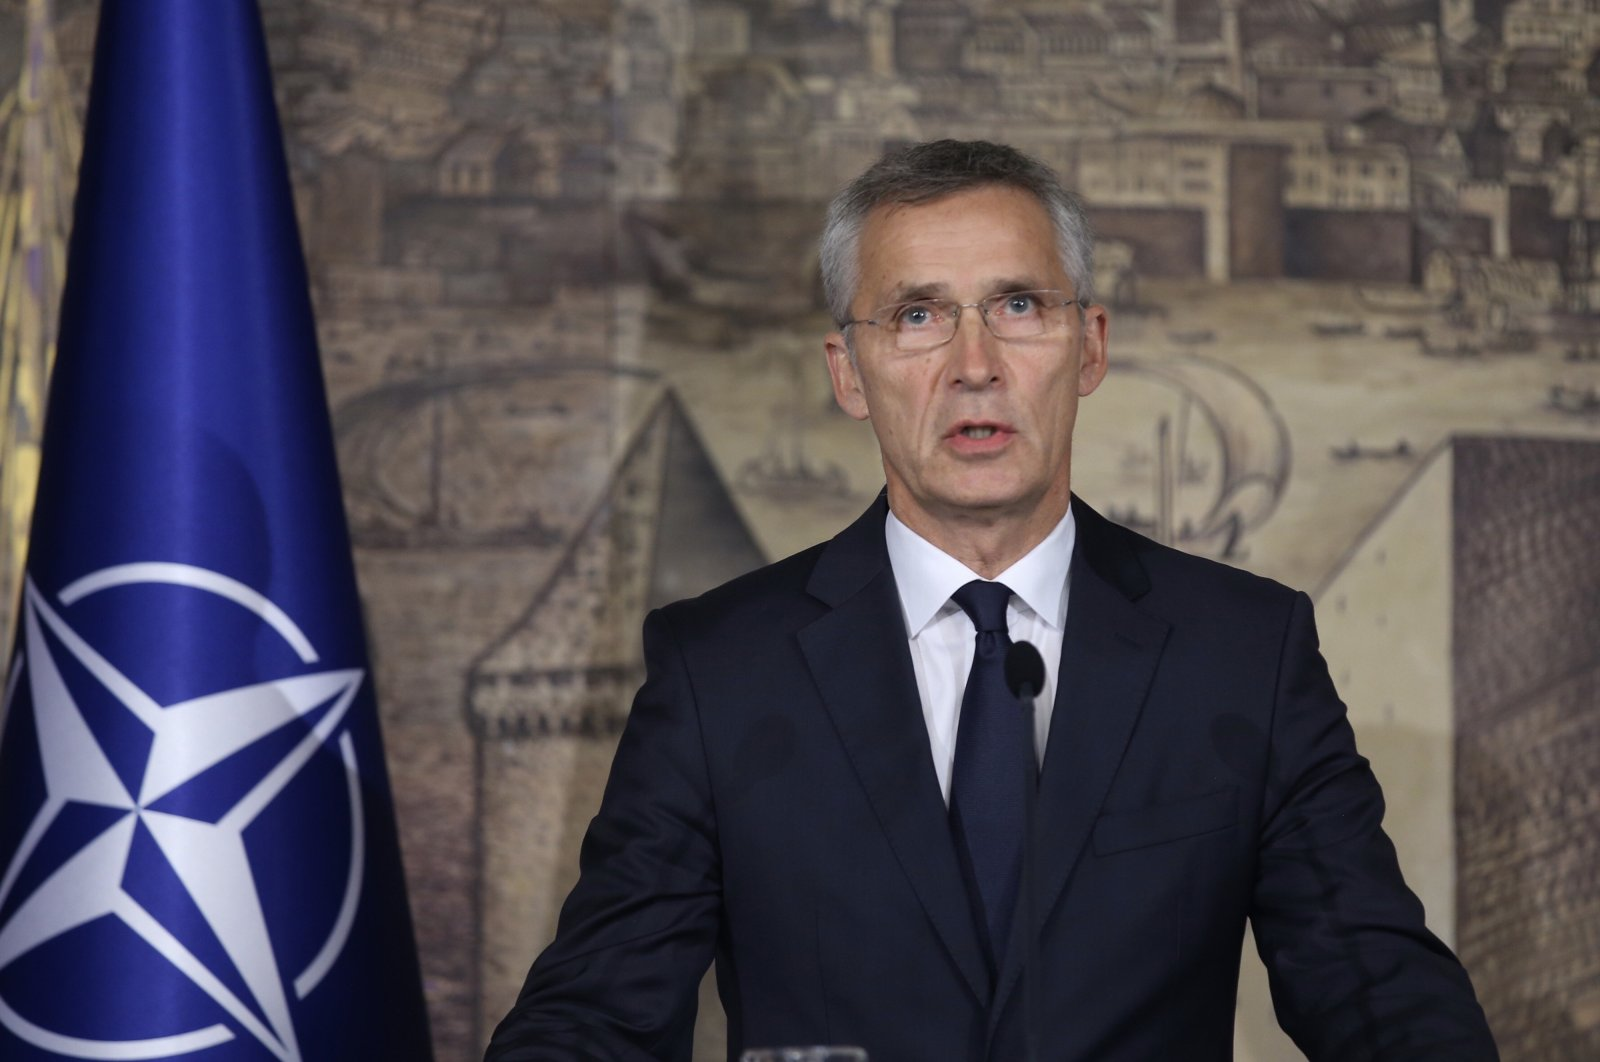 This handout photo released by the Turkish Foreign Ministry shows NATO Secretary-General Jens Stoltenberg holding a joint news conference after a meeting with Turkish Foreign Minister Mevlüt Çavuşoğlu at Dolmabahçe Palace in Istanbul, Turkey, Oct. 11, 2019. (AFP Photo)